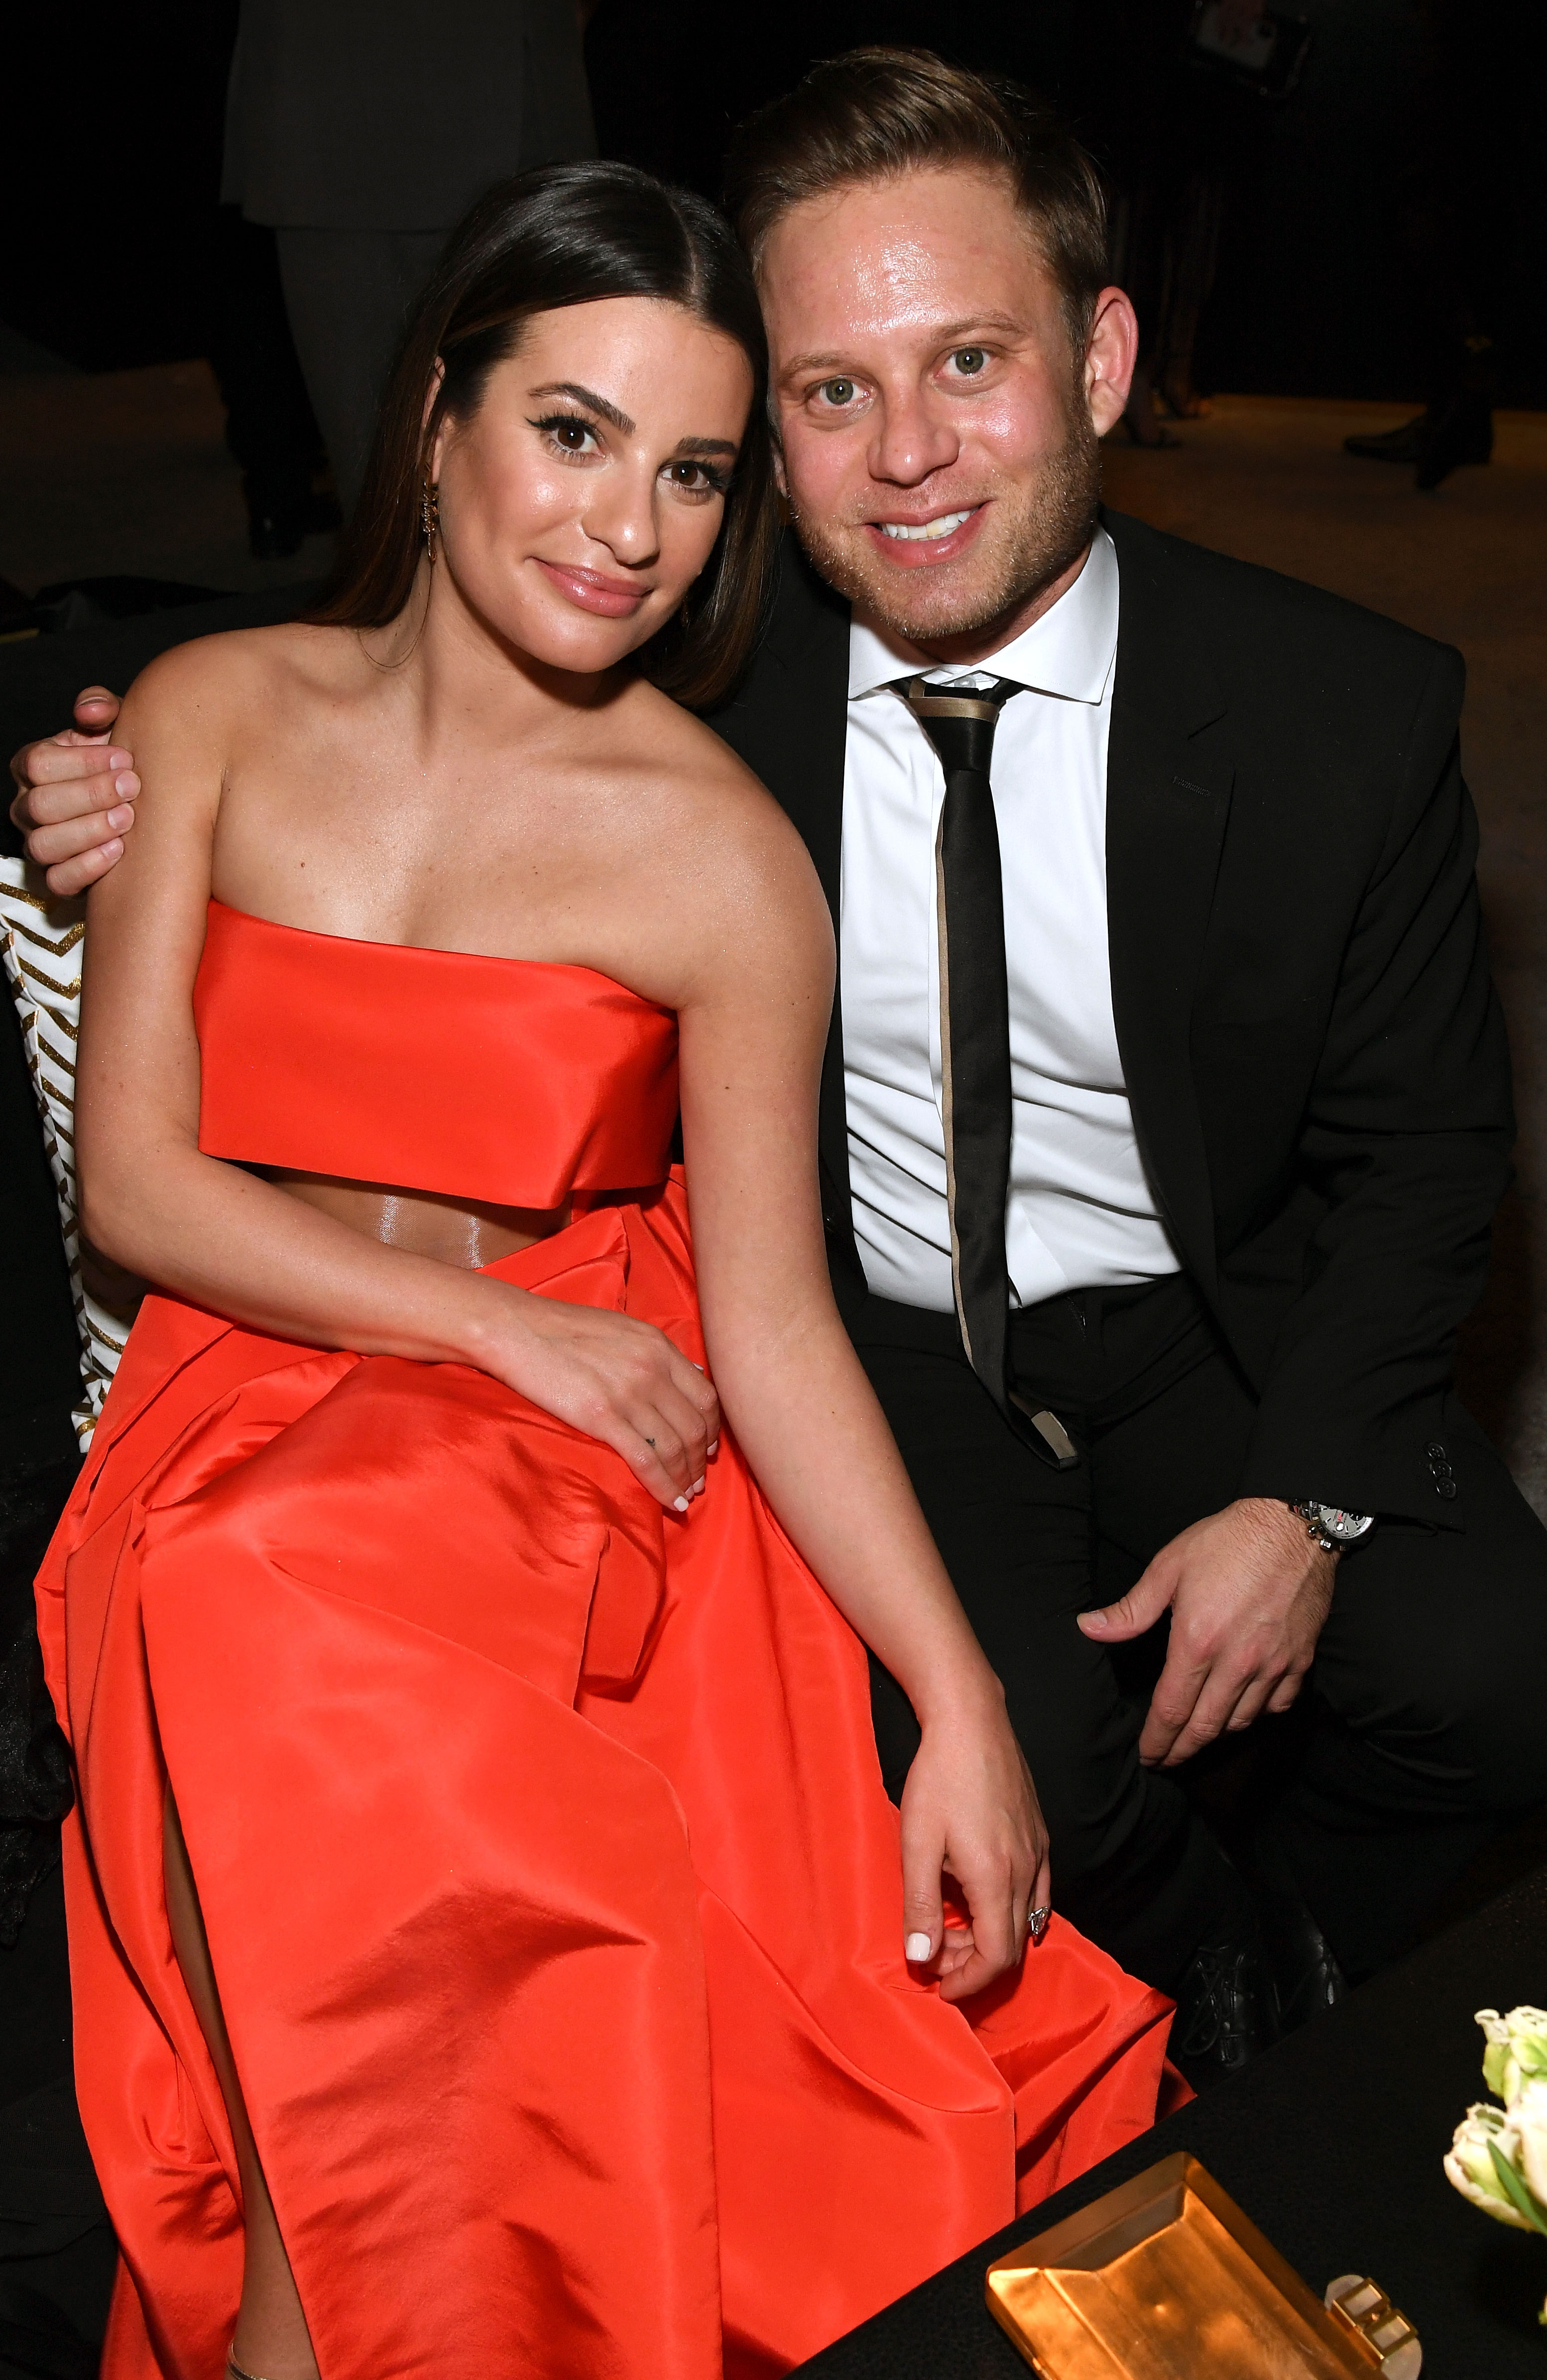 Lea Michele and Zandy Reich celebrity weddings of 2019 - The Glee alum wed the AYR president in Napa, California, on March 9. In attendance for the celebration were former costars and close pals Becca Tobin, Darren Criss and Jonathan Groff, among others.